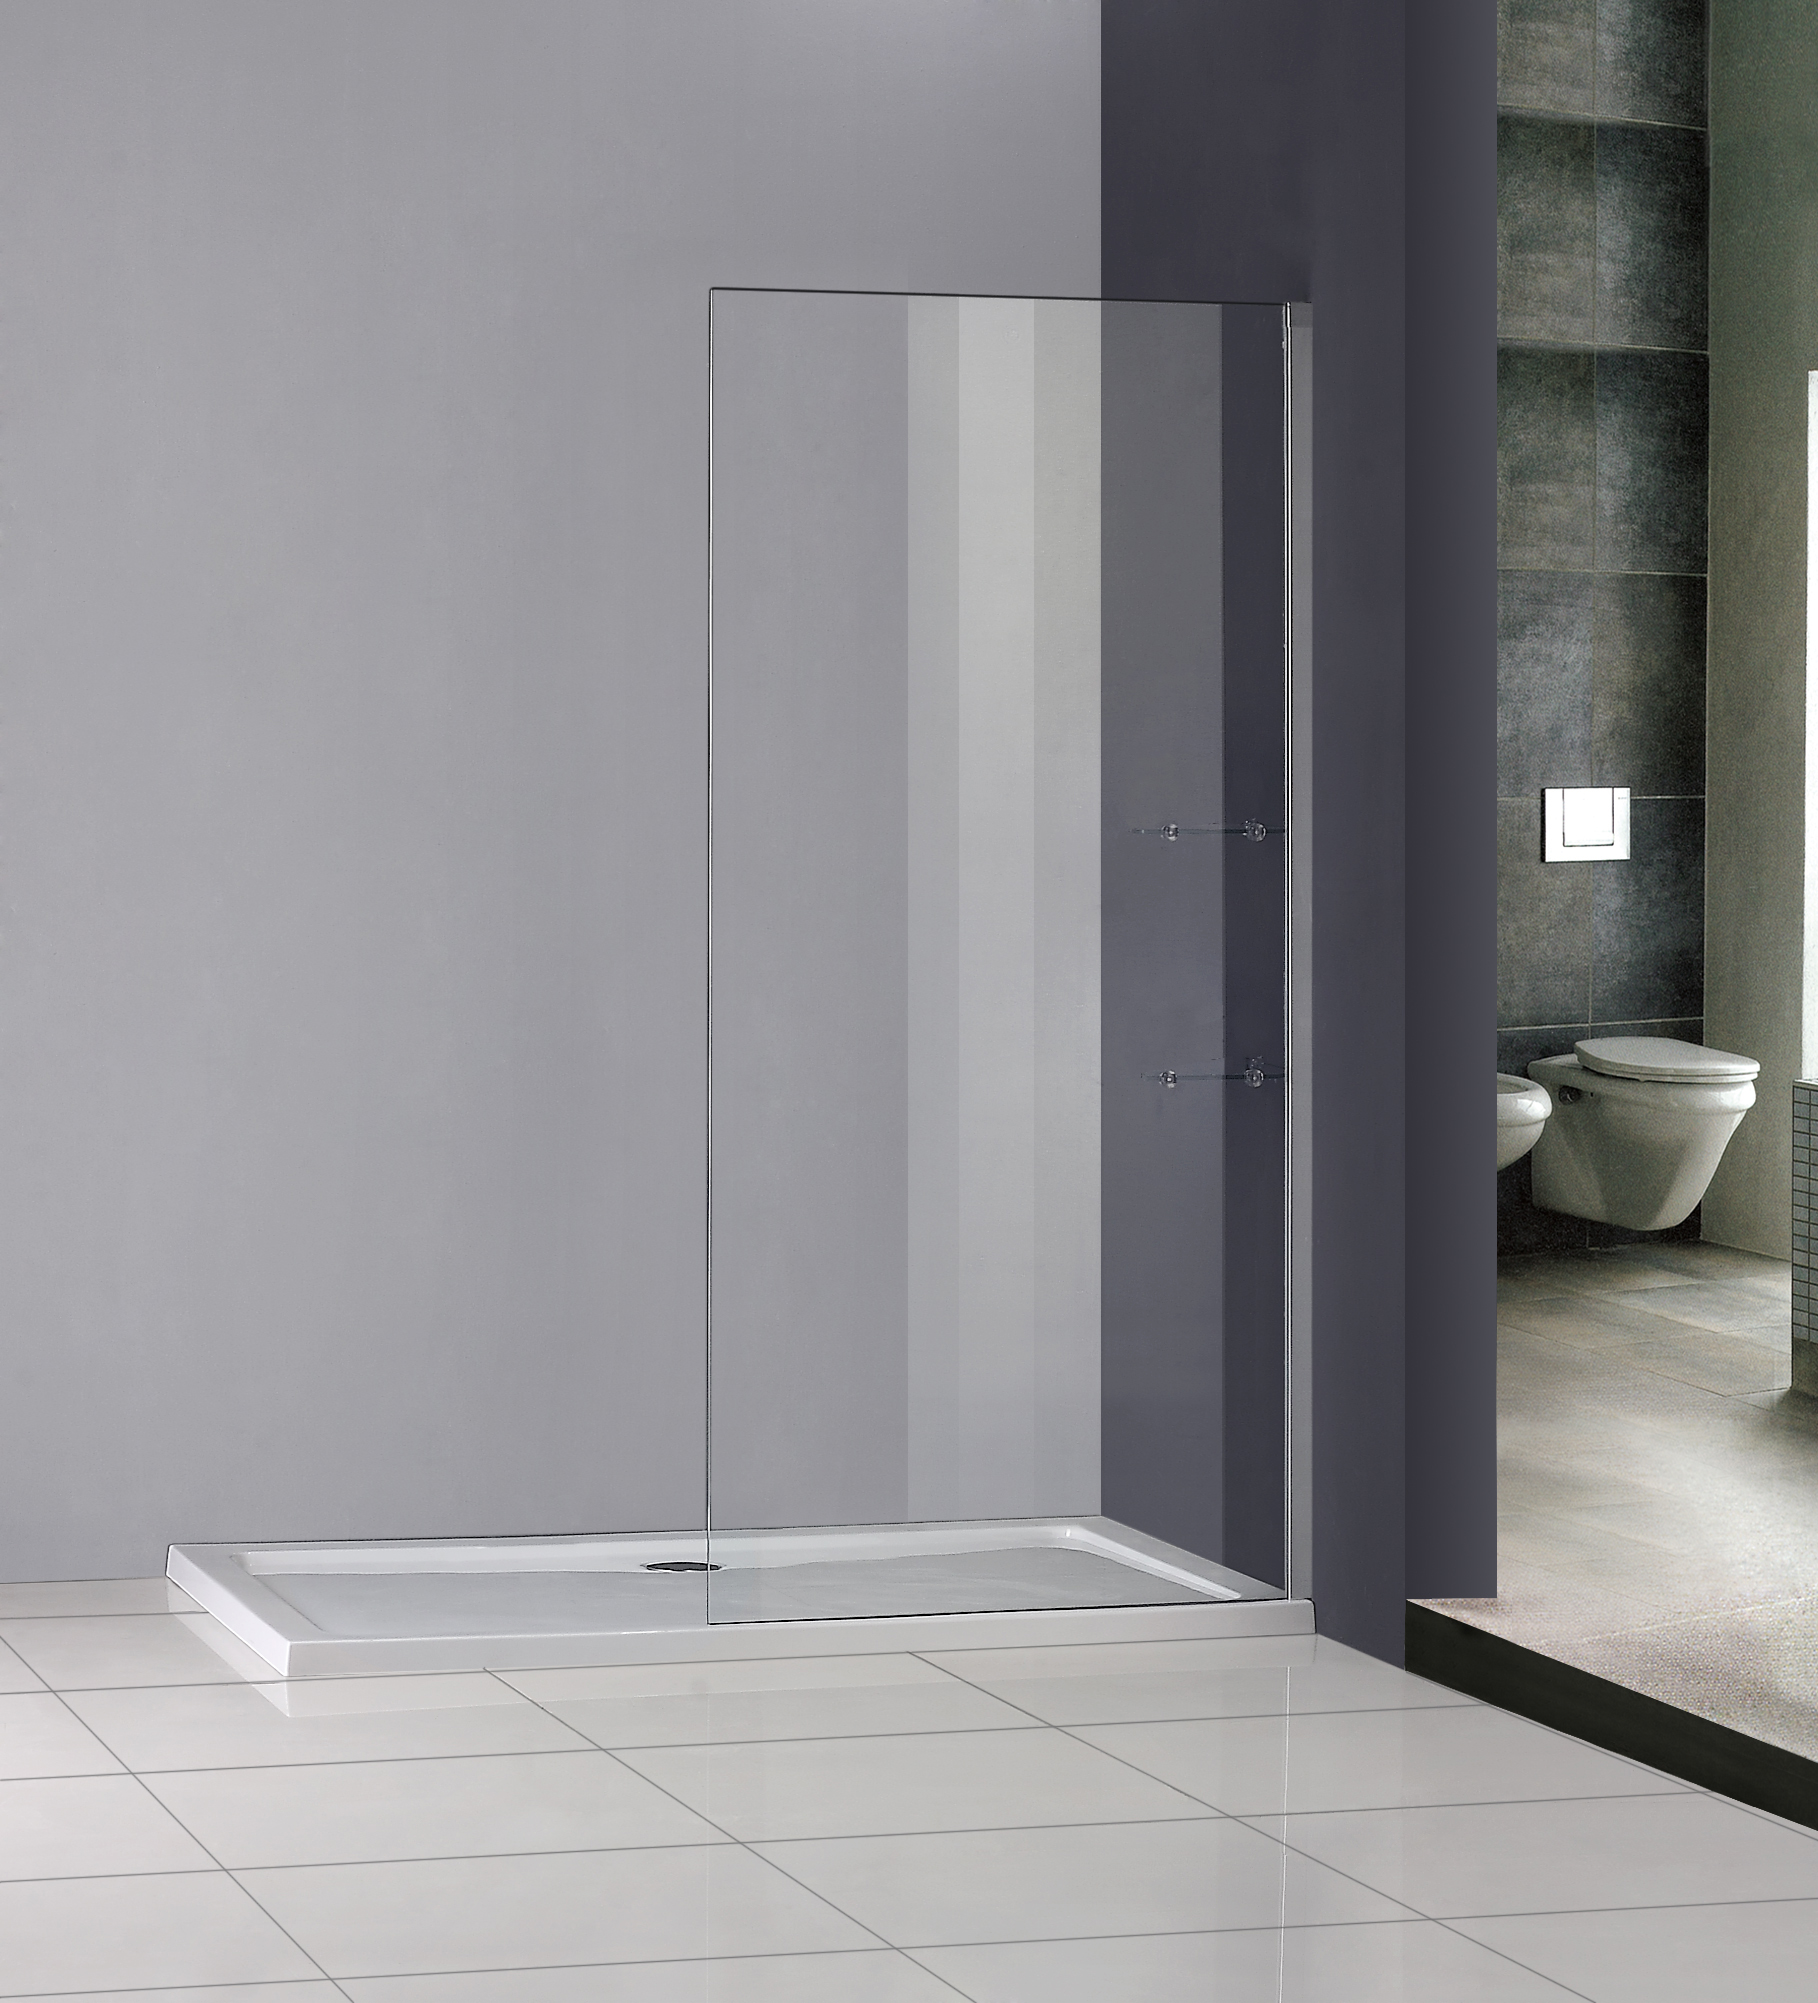 Luxury shower enclosure wet room walk in glass screen cubicle panel stone tray w ebay - Luxury shower cubicles ...